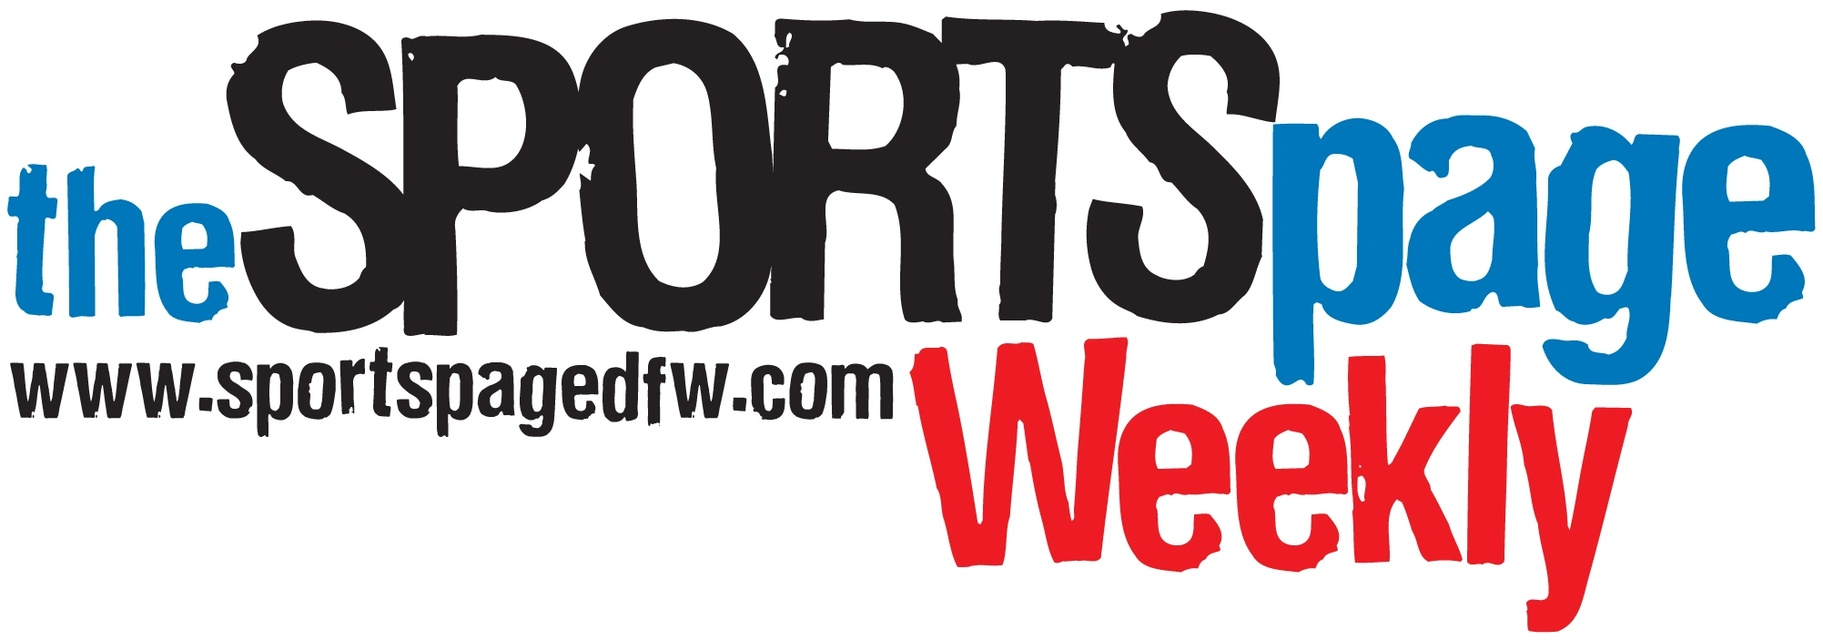 The Sports Page Weekly